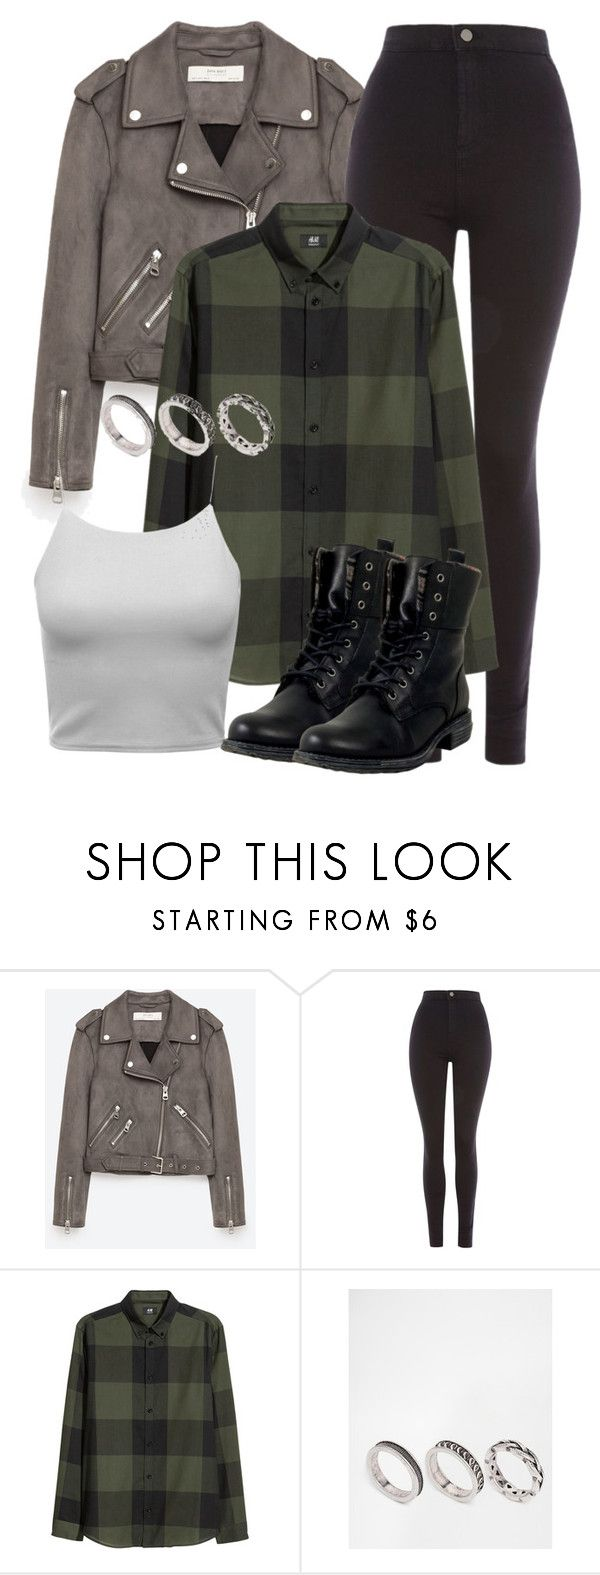 """Stefan Inspired Outfit - The Vampire Diaries / The Originals"" by fangsandfashion ❤ liked on Polyvore featuring Jakke, Topshop, ASOS and Miz Mooz"